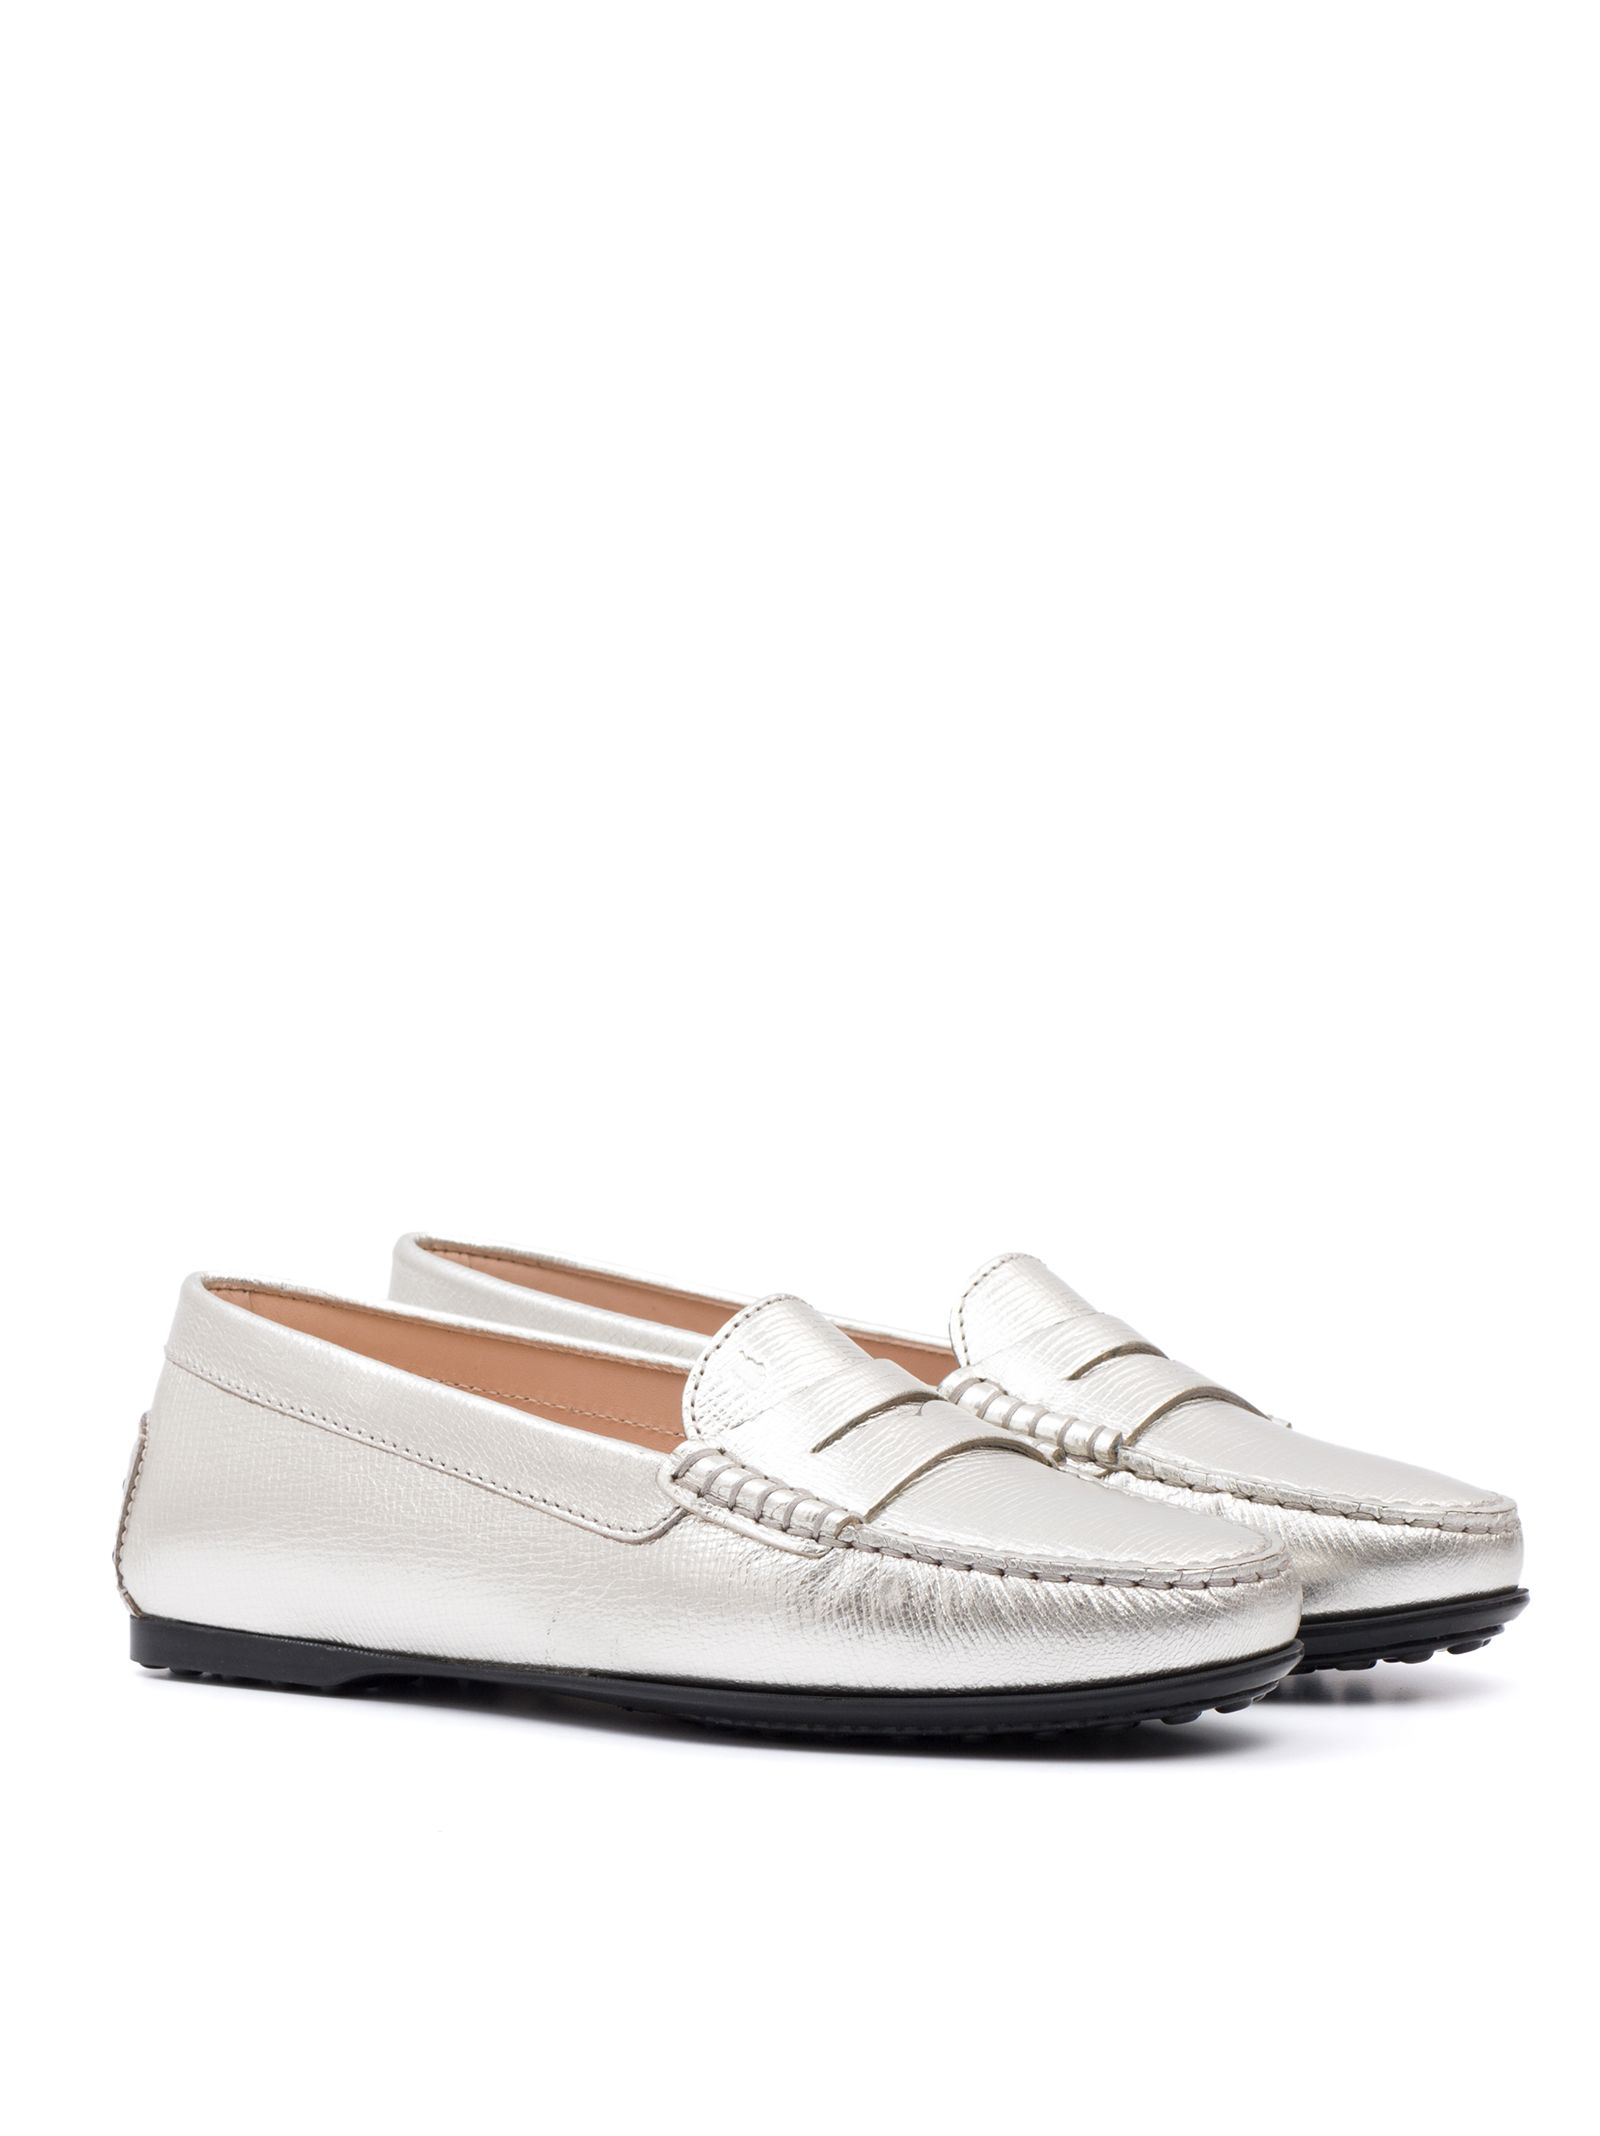 e0ab3eb9802 Tod s City Gommino Loafers In Leather - Silver - 7723110